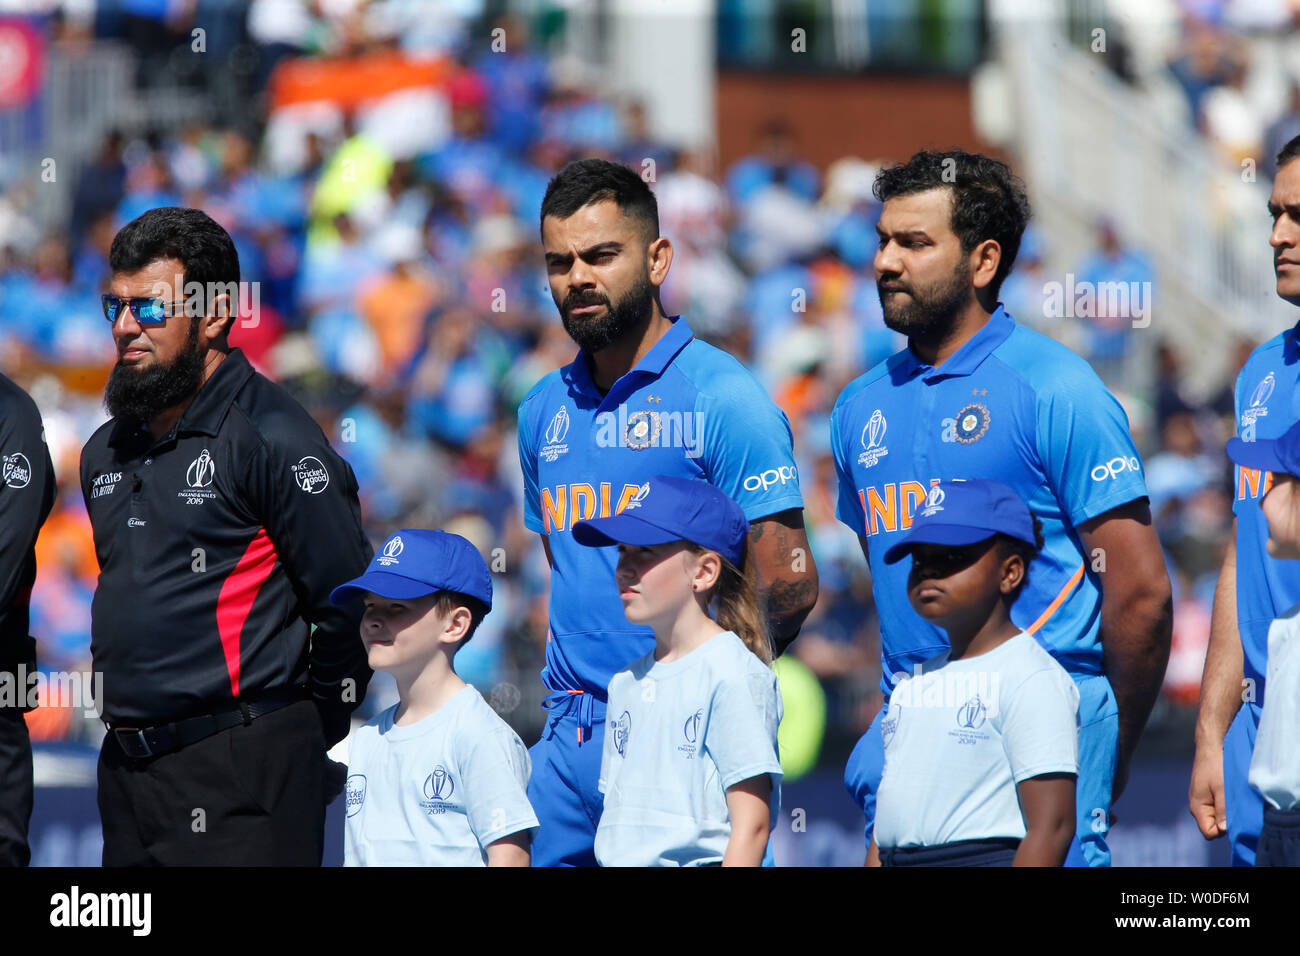 Old Trafford, Manchester, UK  27th June, 2019  ICC World Cup